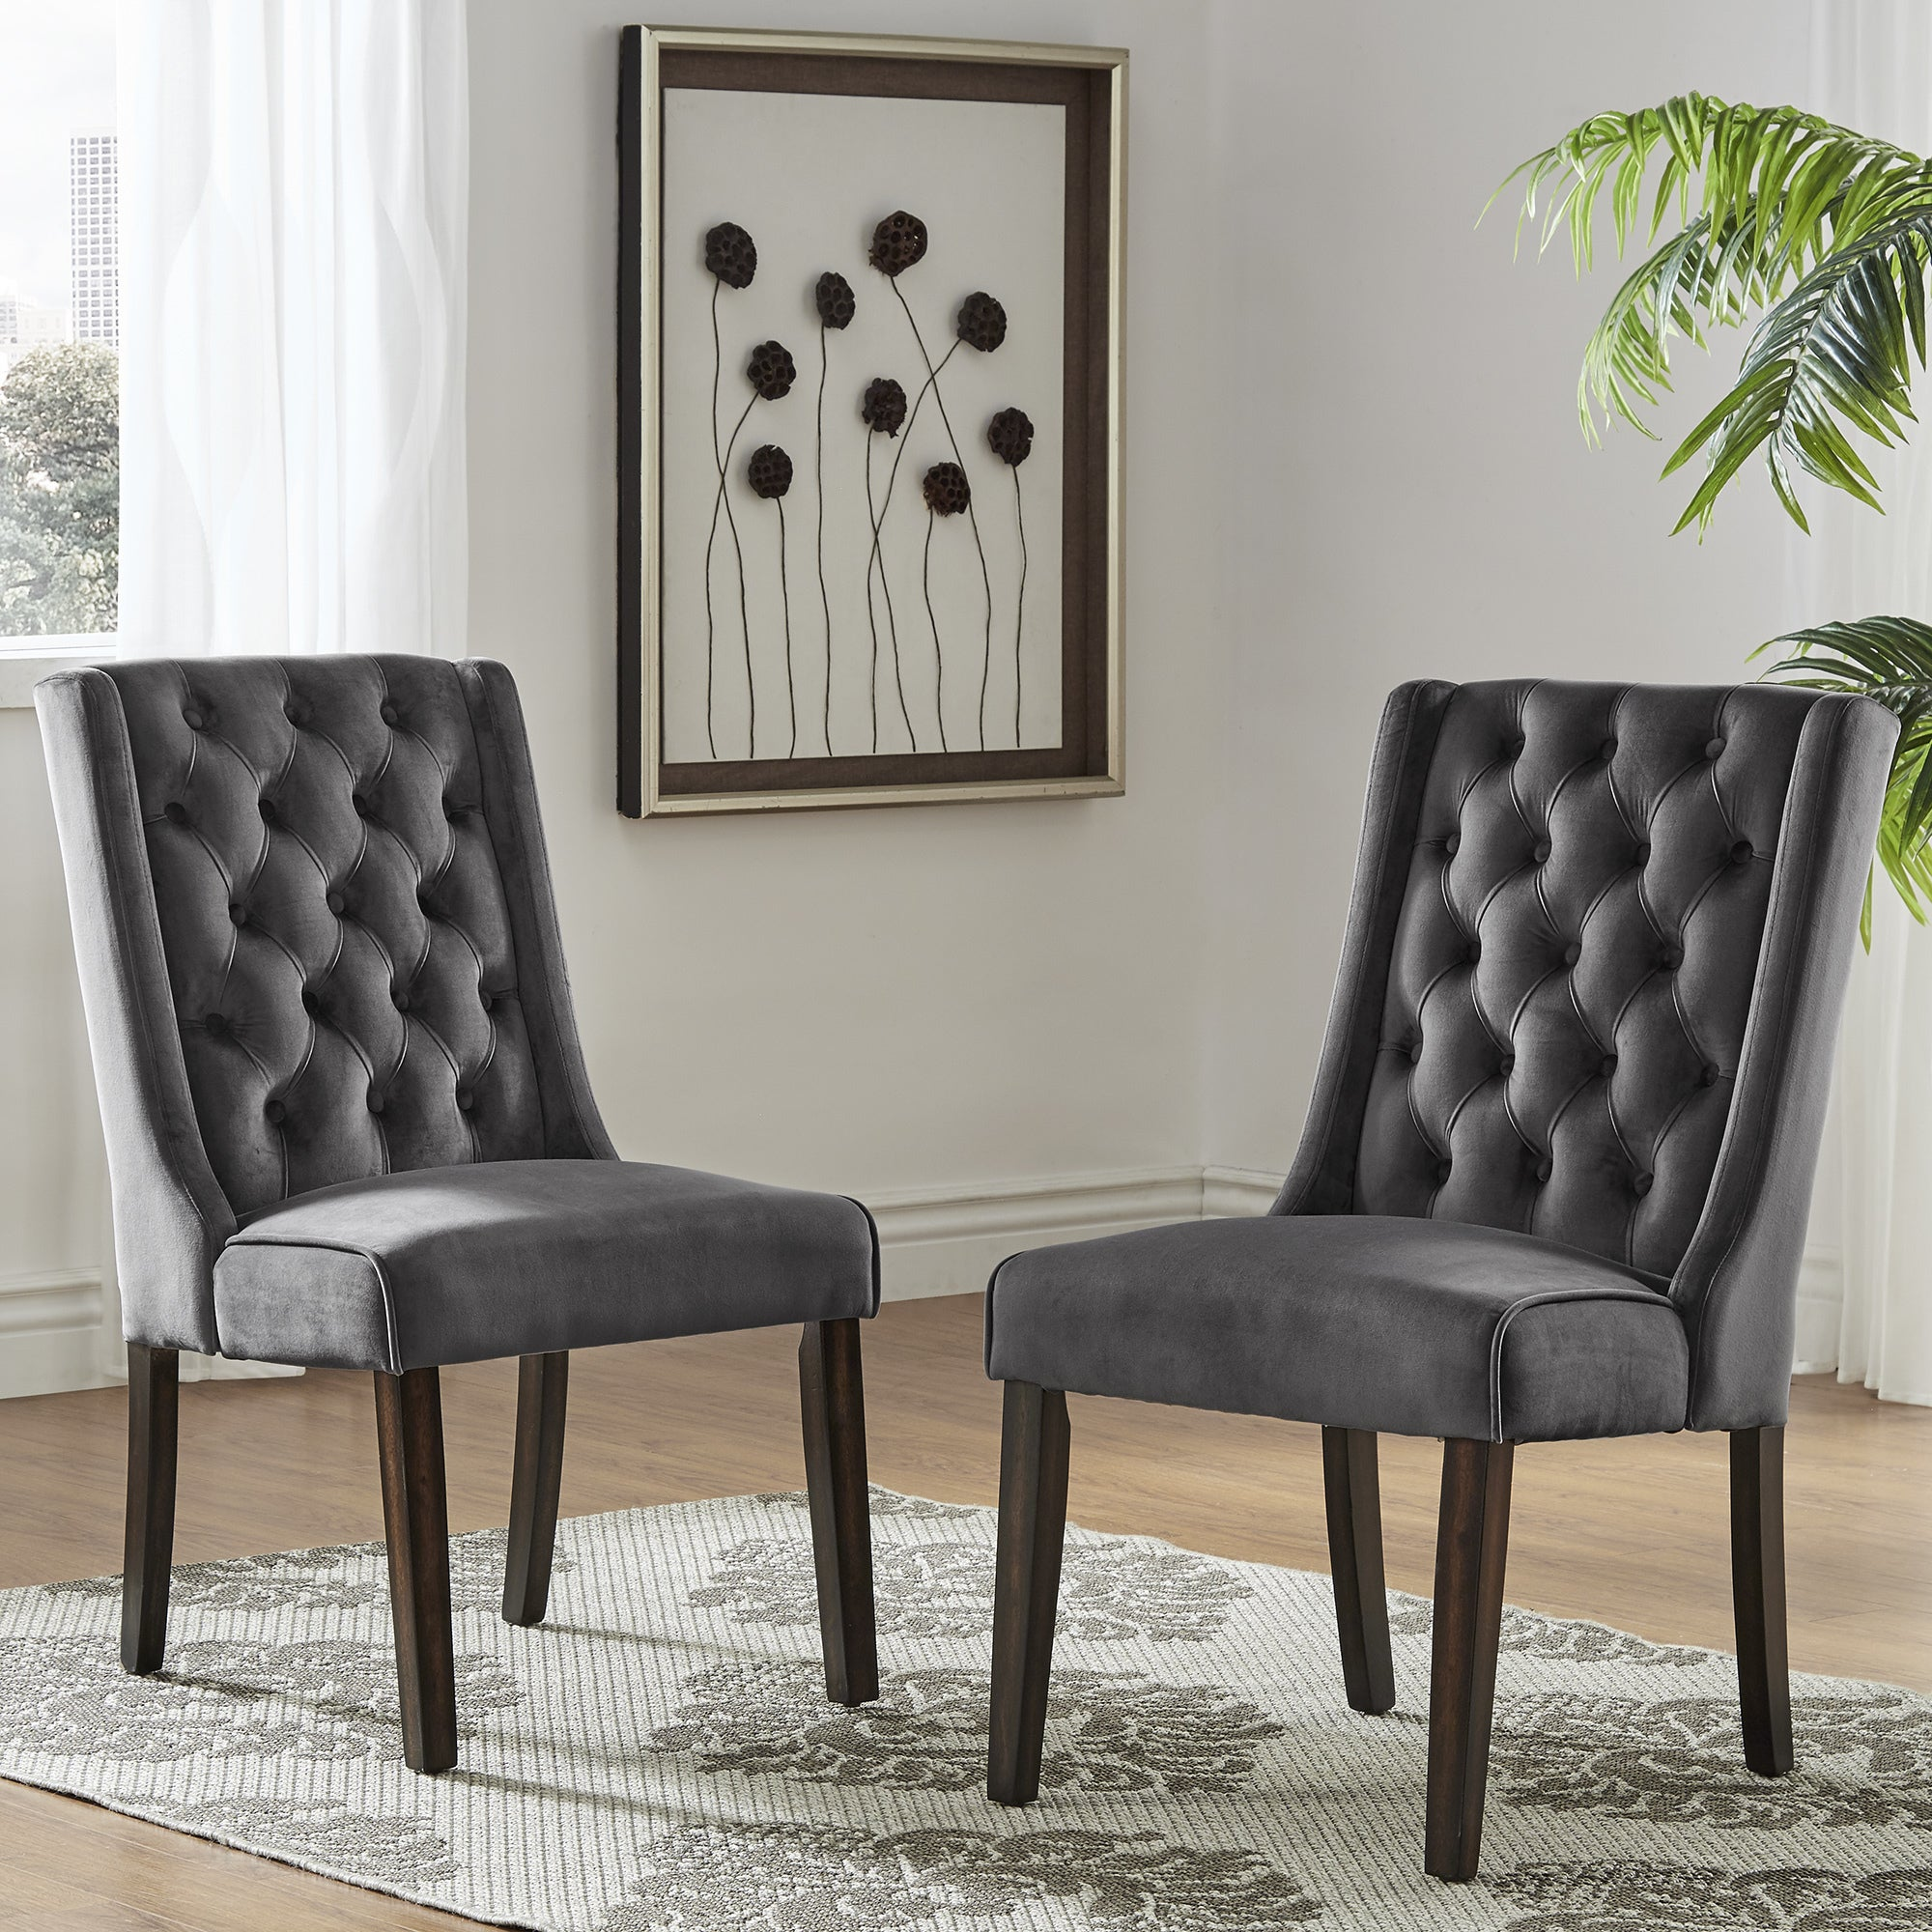 Shop Evelyn II Velvet Tufted Wingback Hostess Chairs (Set of 2) by iNSPIRE Q Bold - Free Shipping Today - Overstock.com - 16306444 & Shop Evelyn II Velvet Tufted Wingback Hostess Chairs (Set of 2) by ...